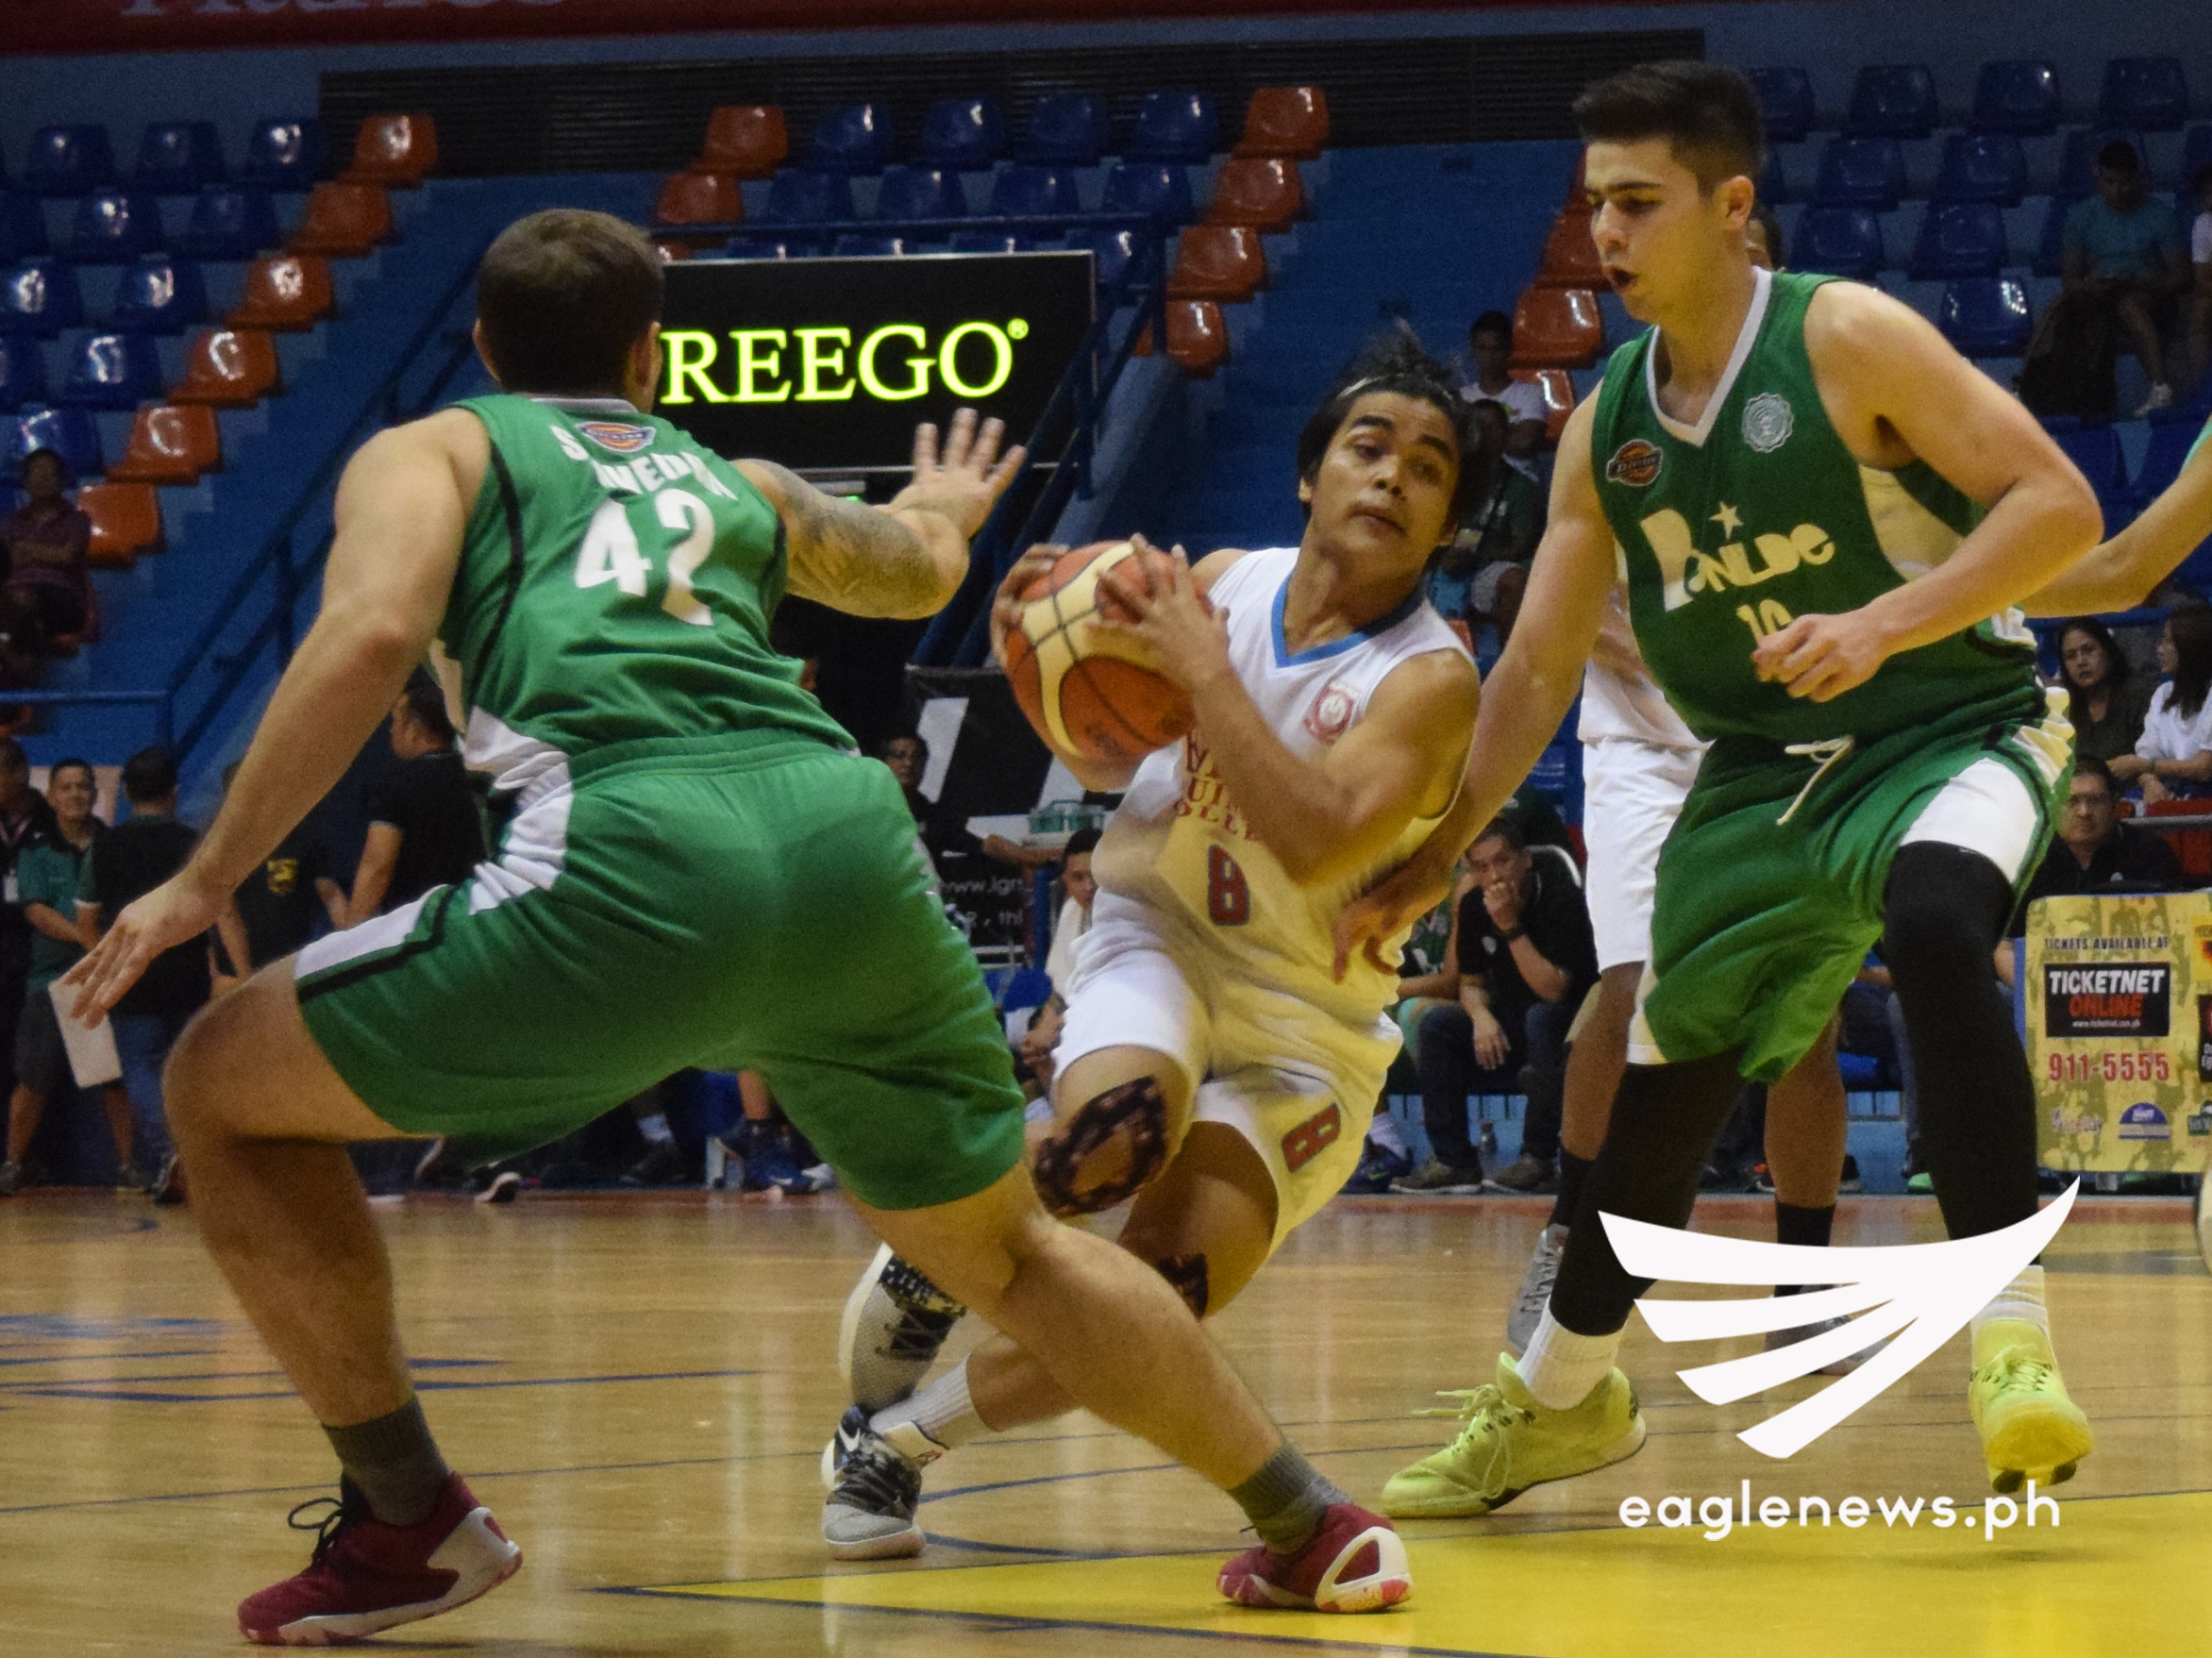 Emilio Aguinaldo College guard Raymund Pascua drives against Benilde forwards Fons Saavedra and Edward Dixon in their Filoil Flying V Hanes Premier Cup game on Thursday. (Photo courtesy: Ariane Joy Sabale / Sports On Air, Eagle News Service)